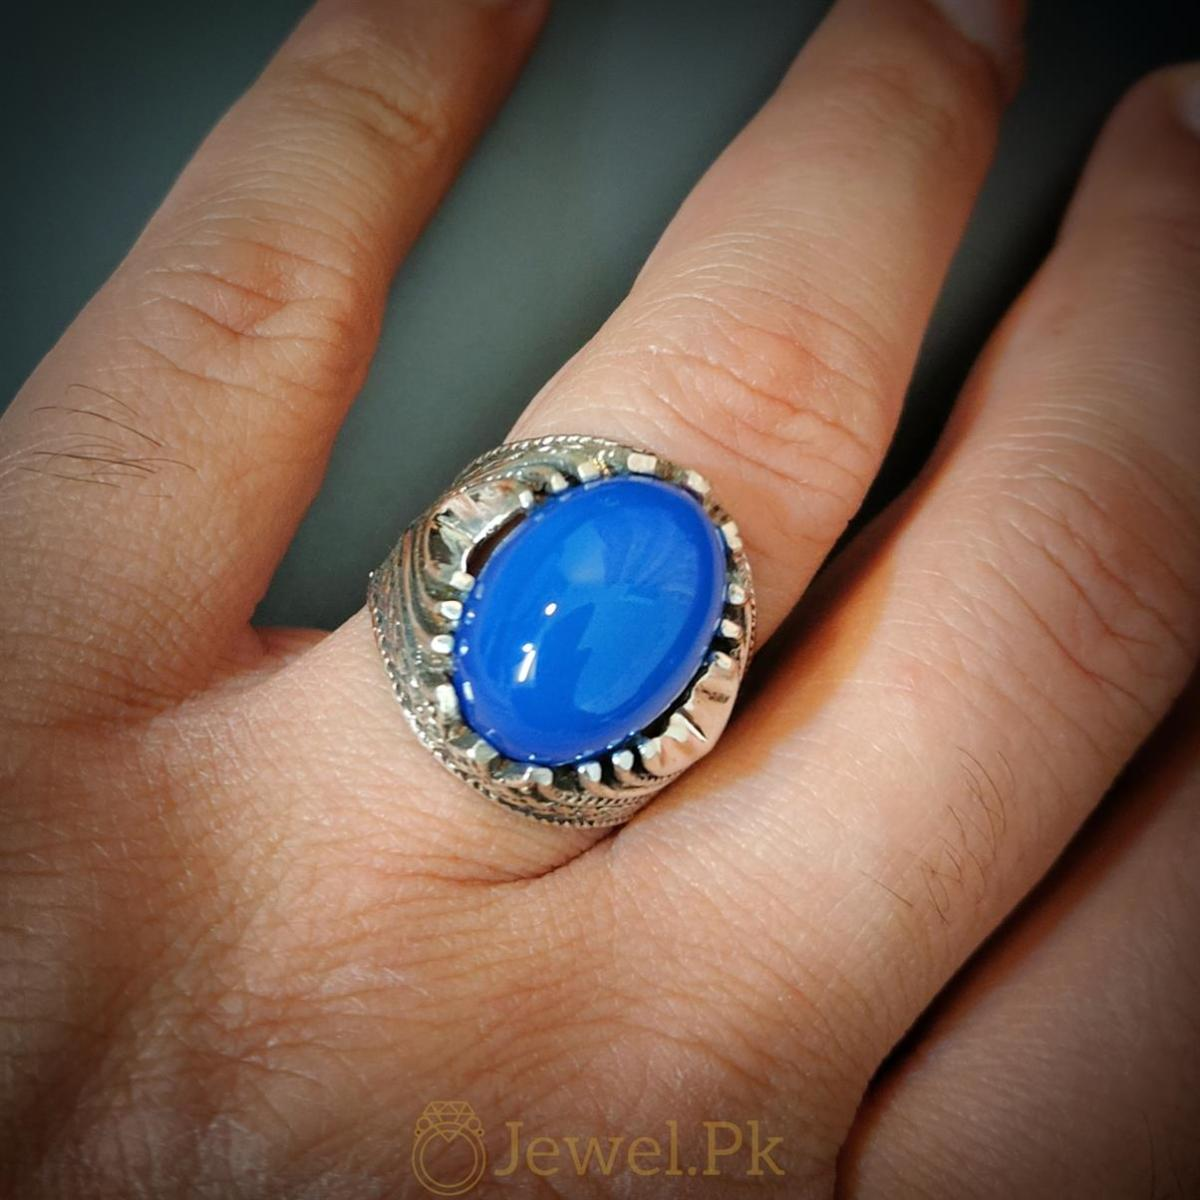 Rare Blue Aqeeq Ring Beautiful and Luxury Turkish Ring 2 natural gemstones pakistan + 925 silver jewelry online